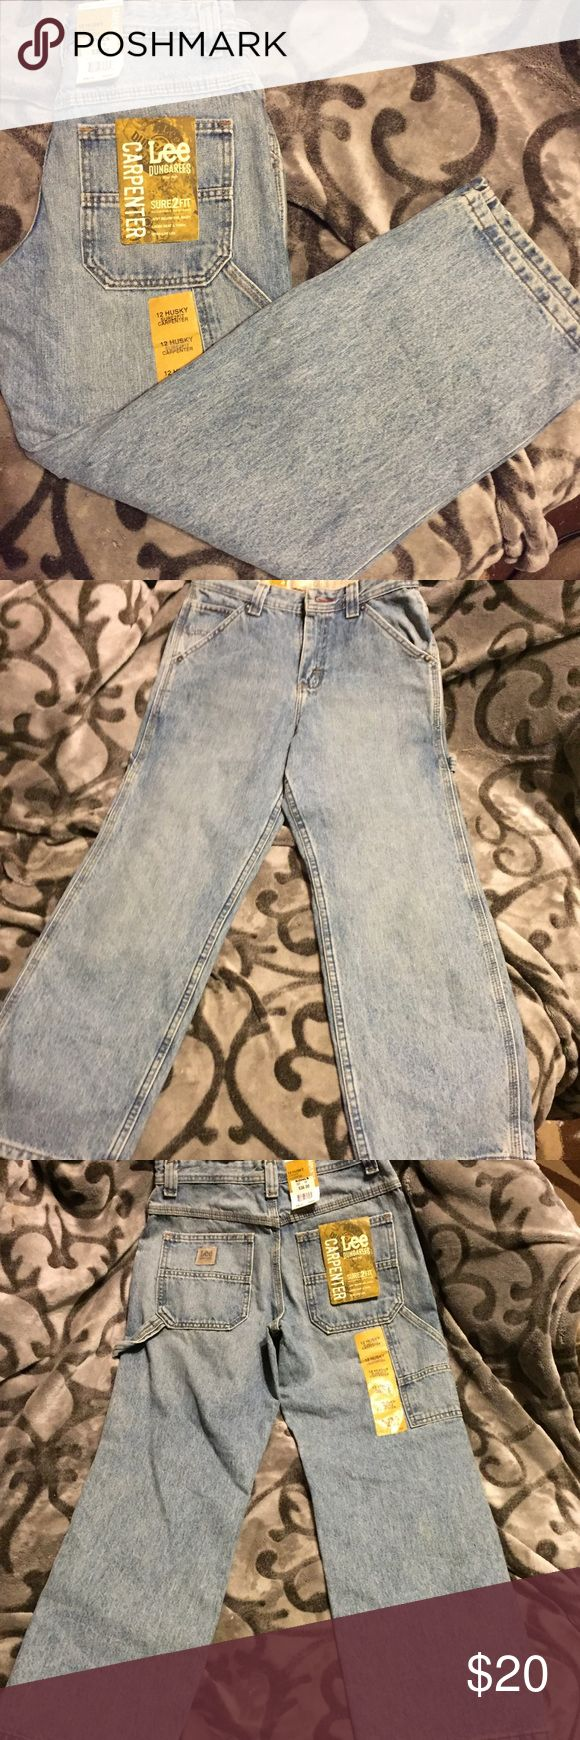 New Lee Dungarees carpenter jeans New with tags. Adjustable waistband inside, sits below the waist, loose seat and thigh, straight leg Lee Dungarees Bottoms Jeans